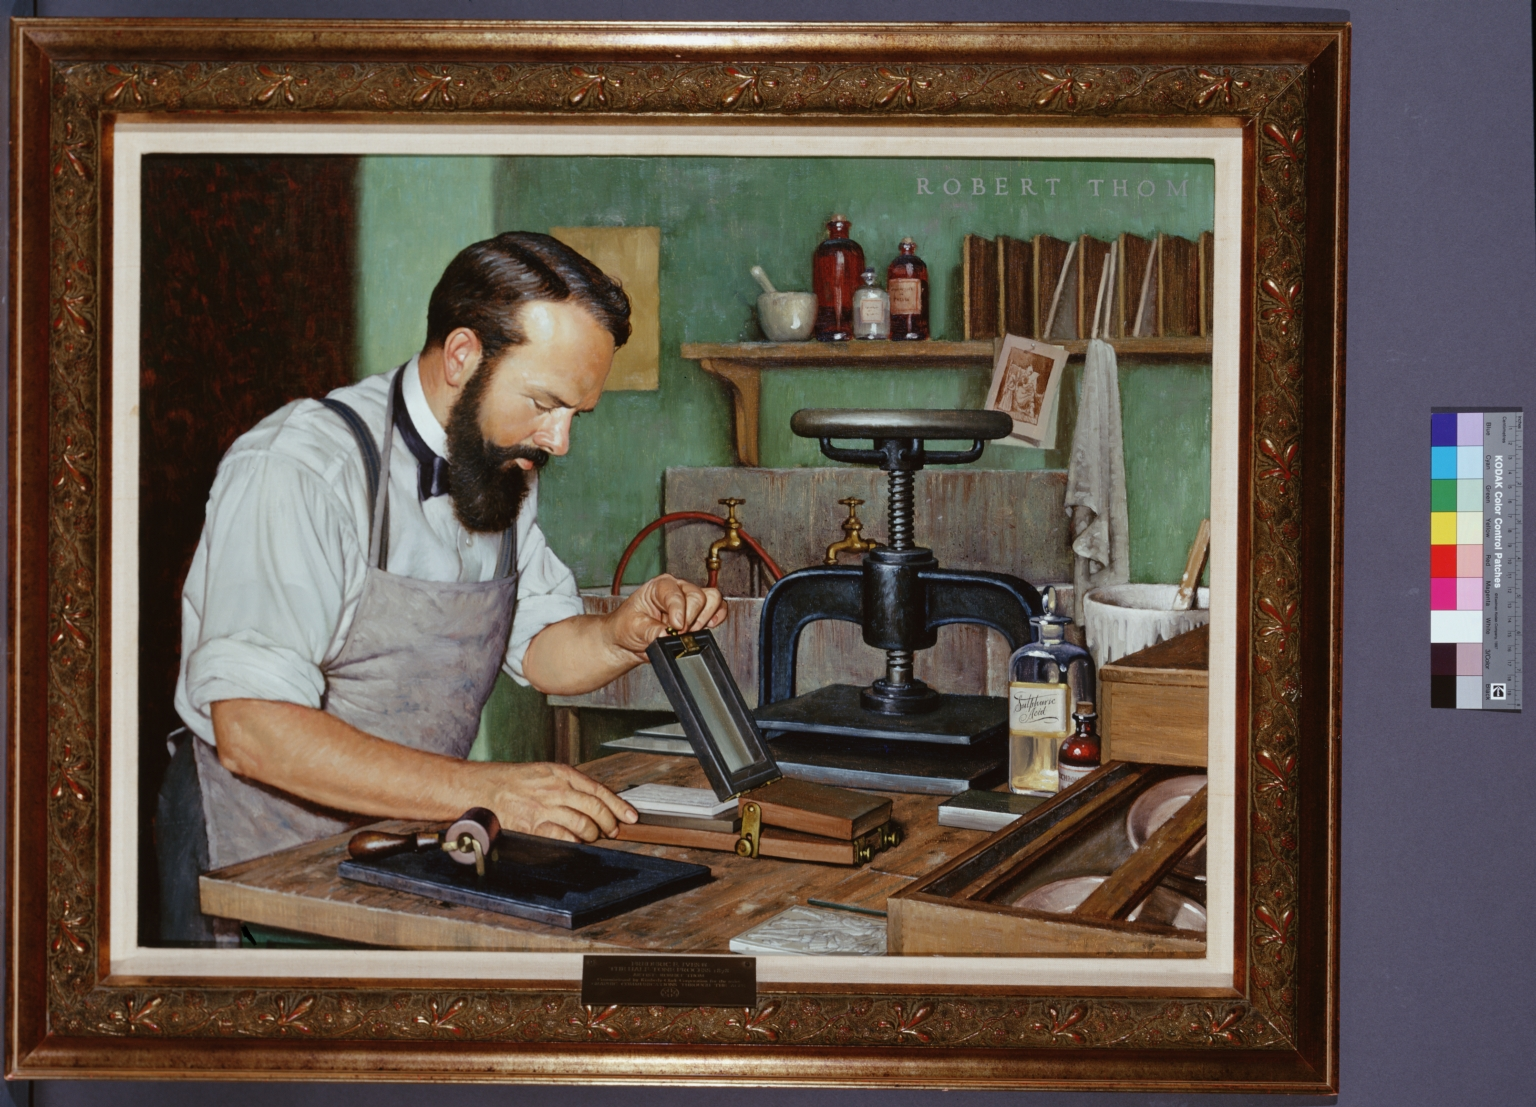 Frederic E. Ives and the Half-Tone Process